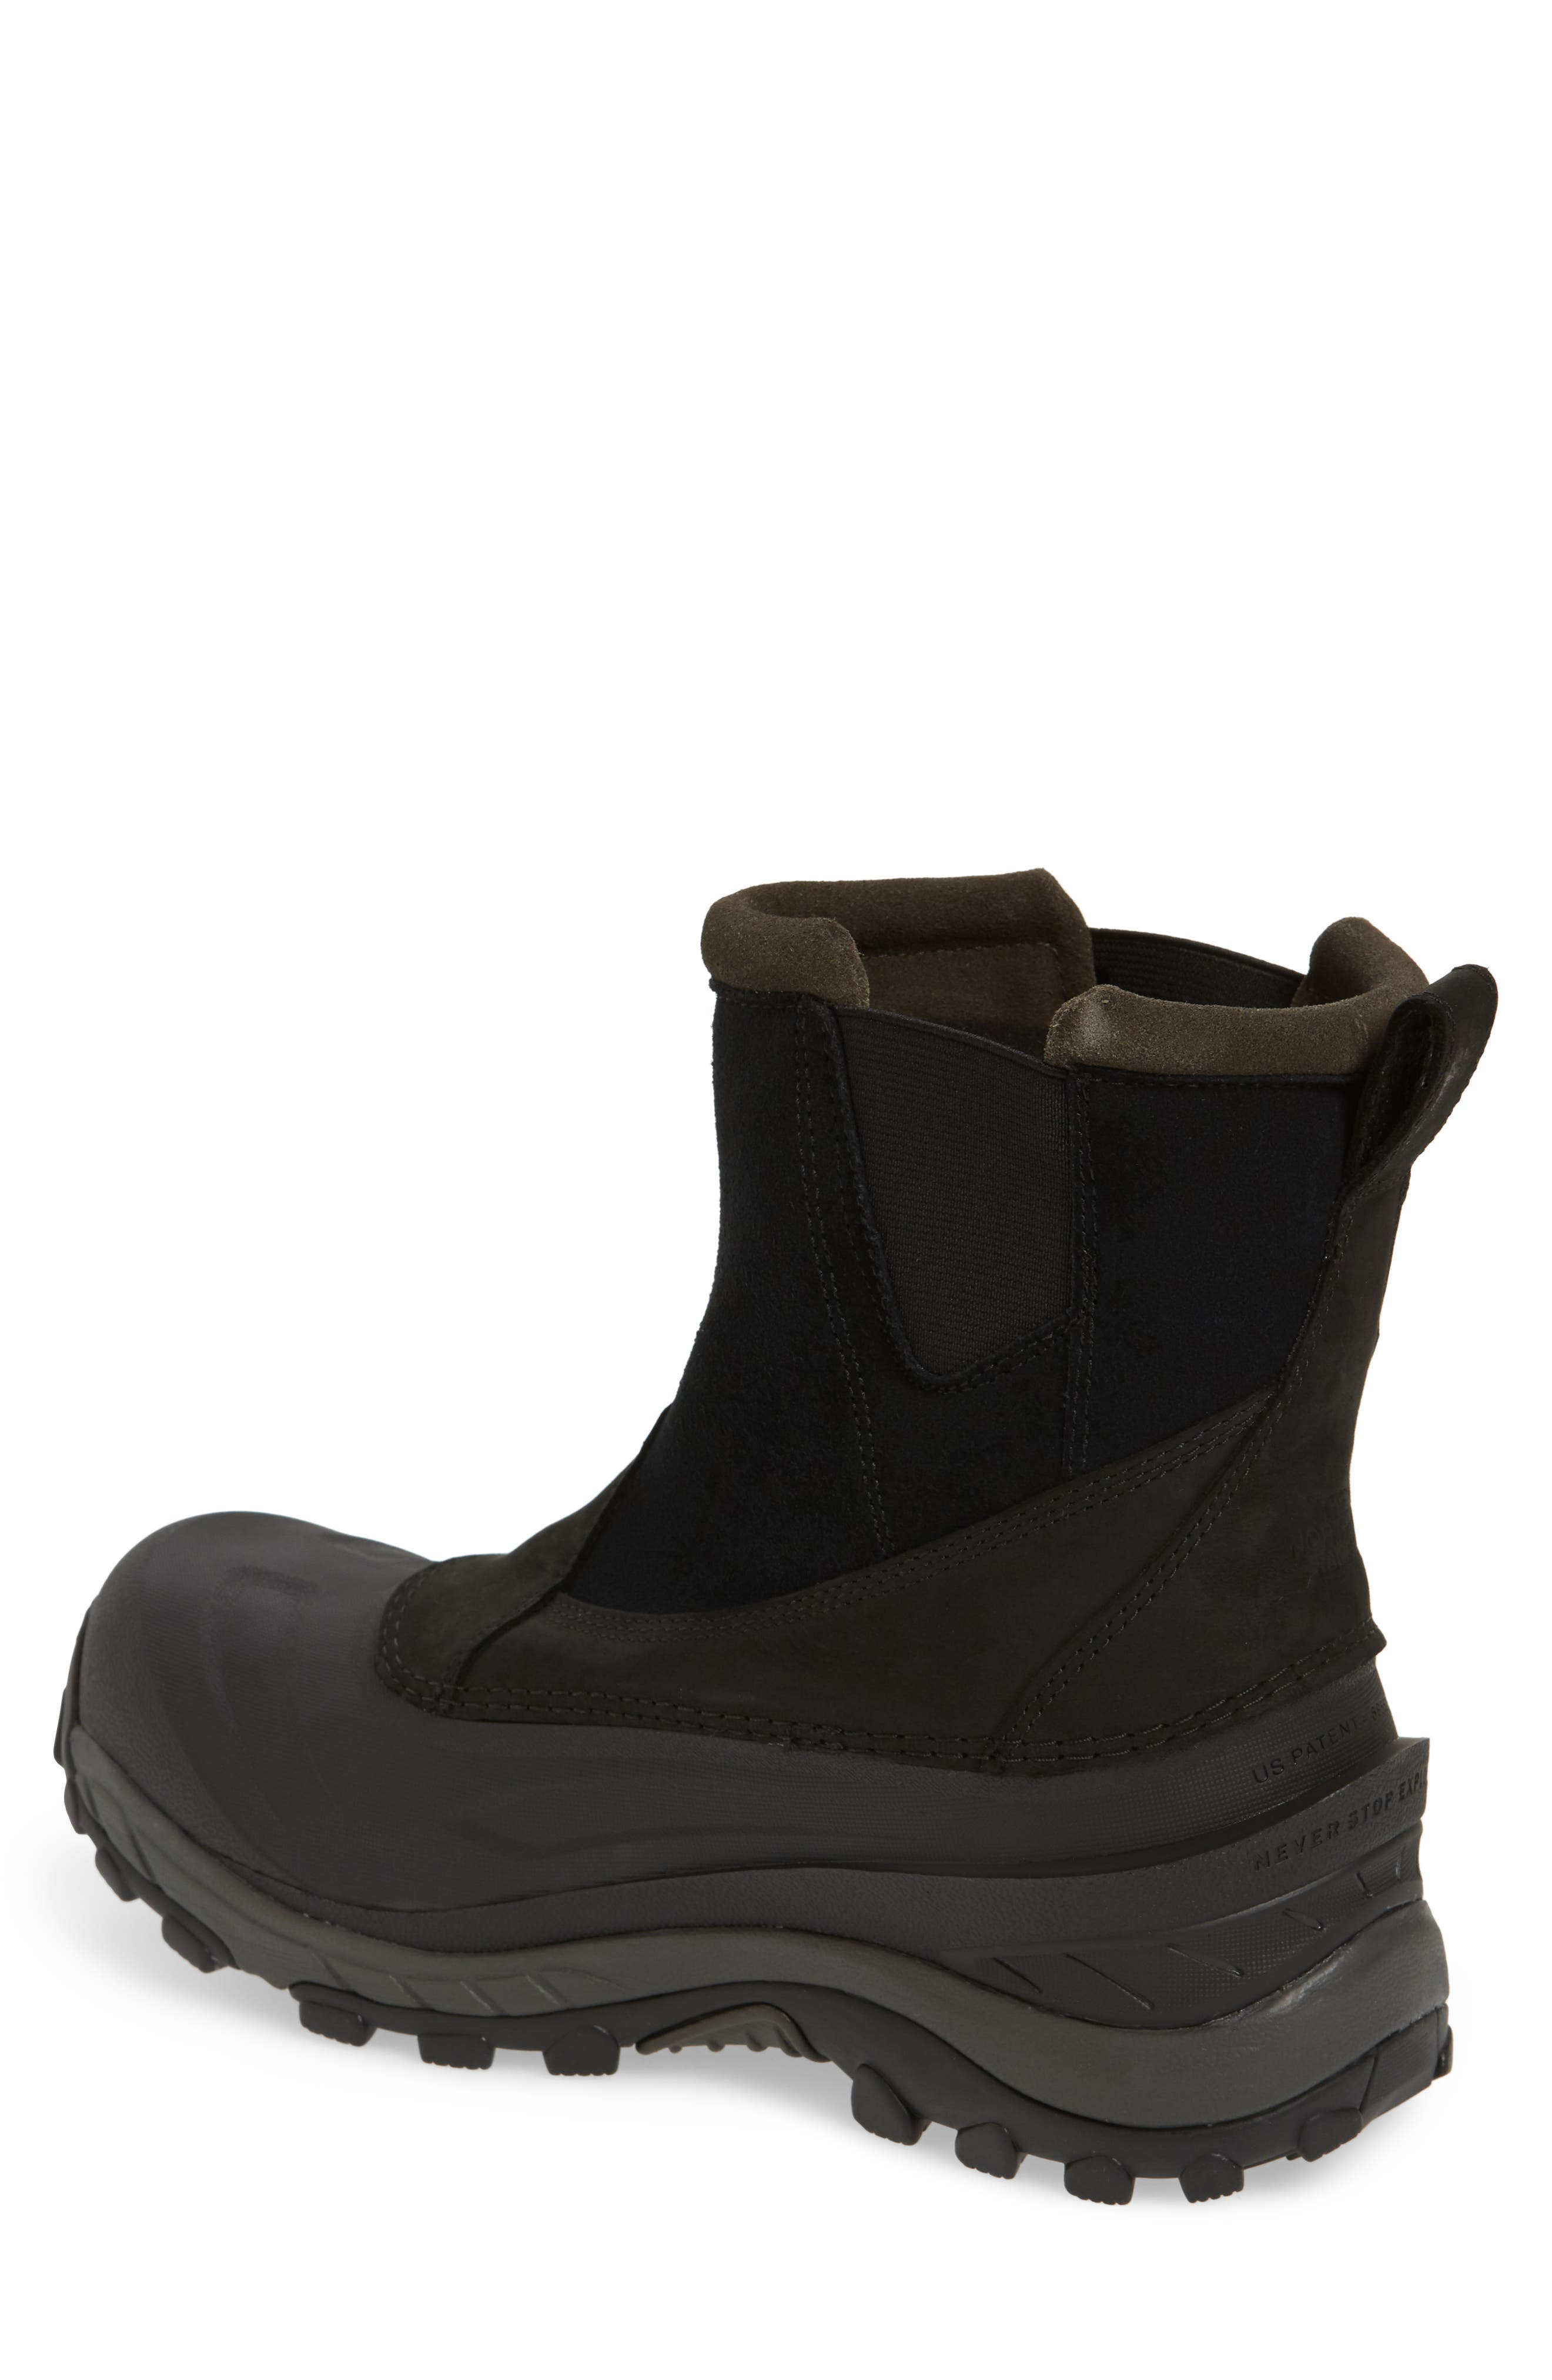 Chilkat III Waterproof Insulated Pull-On Boot,                             Alternate thumbnail 2, color,                             TNF BLACK